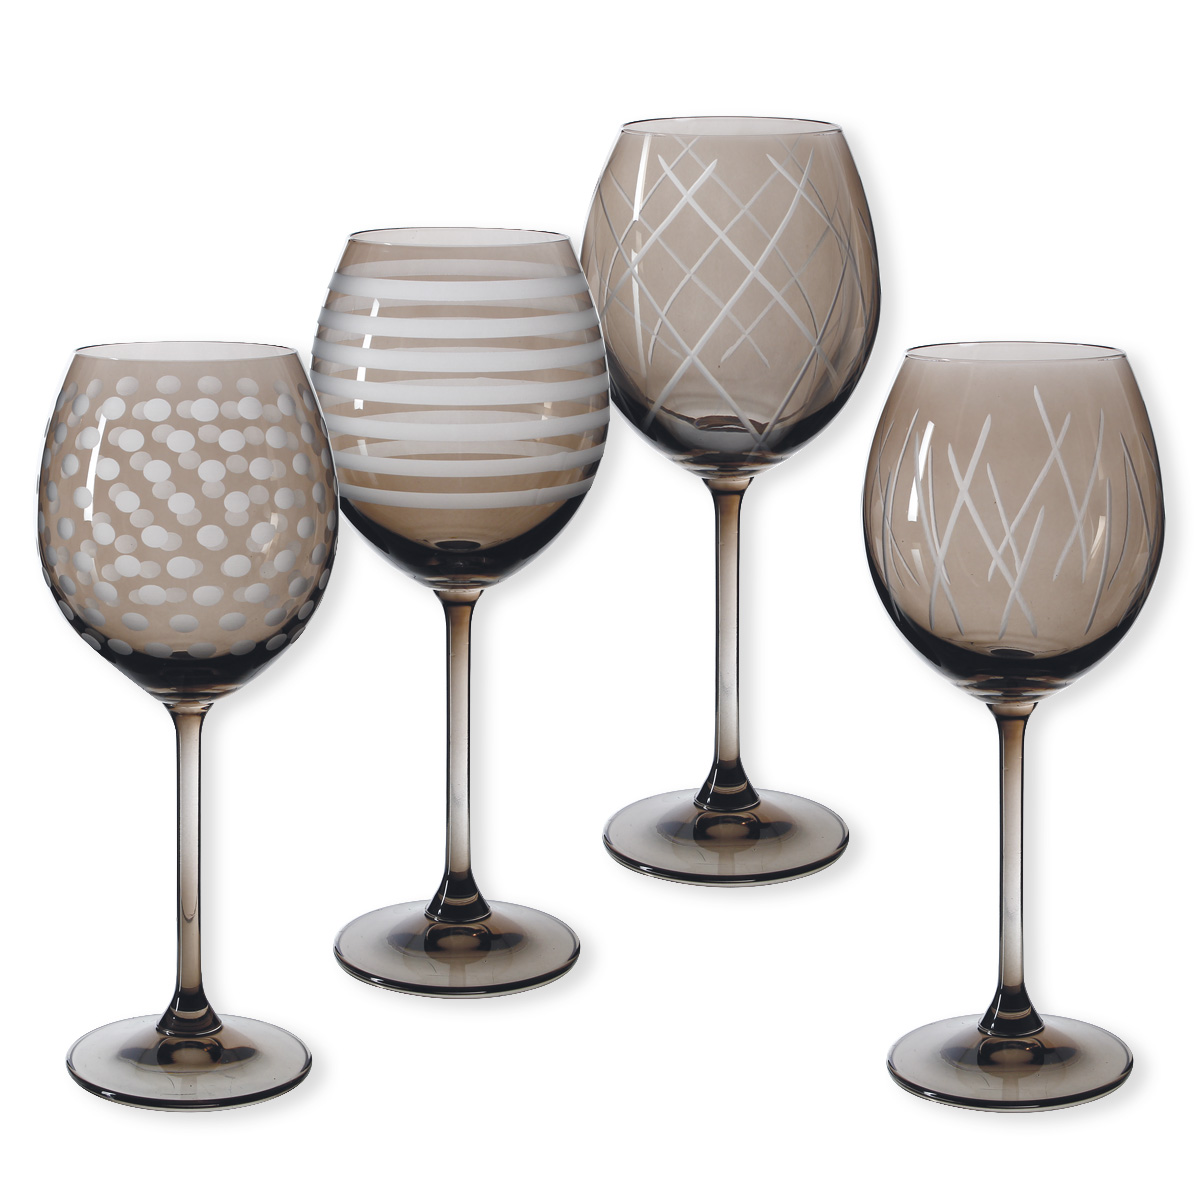 lot de 4 verres vin de couleur taupe quorus bruno evrard. Black Bedroom Furniture Sets. Home Design Ideas